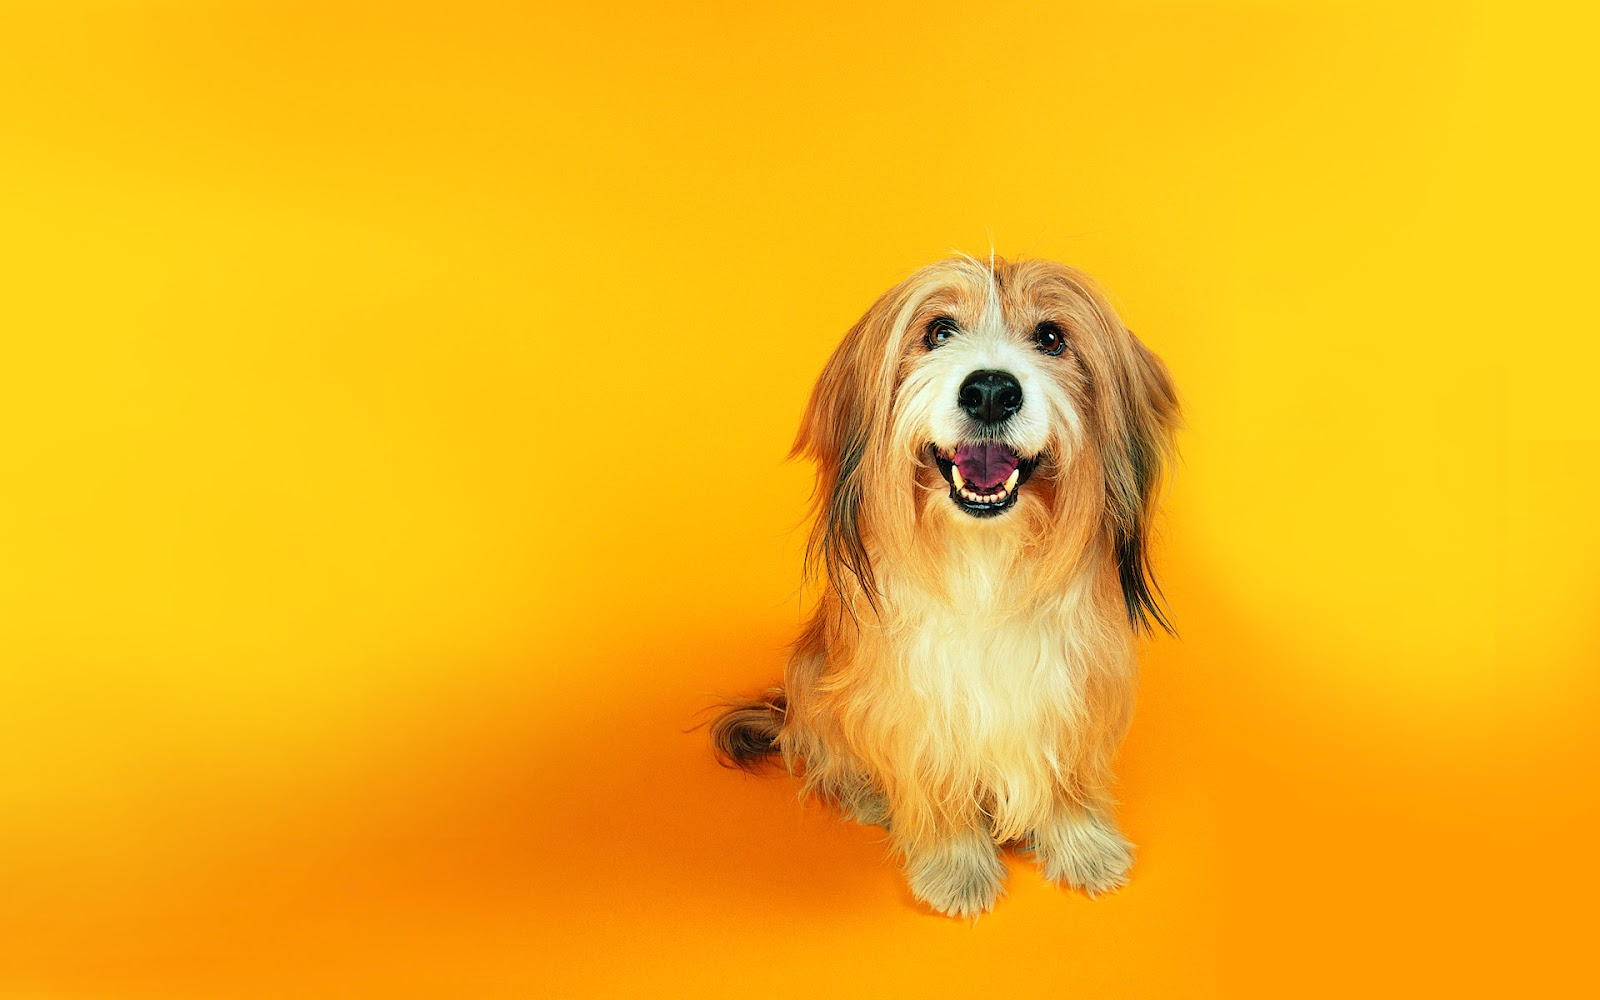 Funny Cats & Dogs Wallpapers : Details and Specifications by Wallpaper Collections